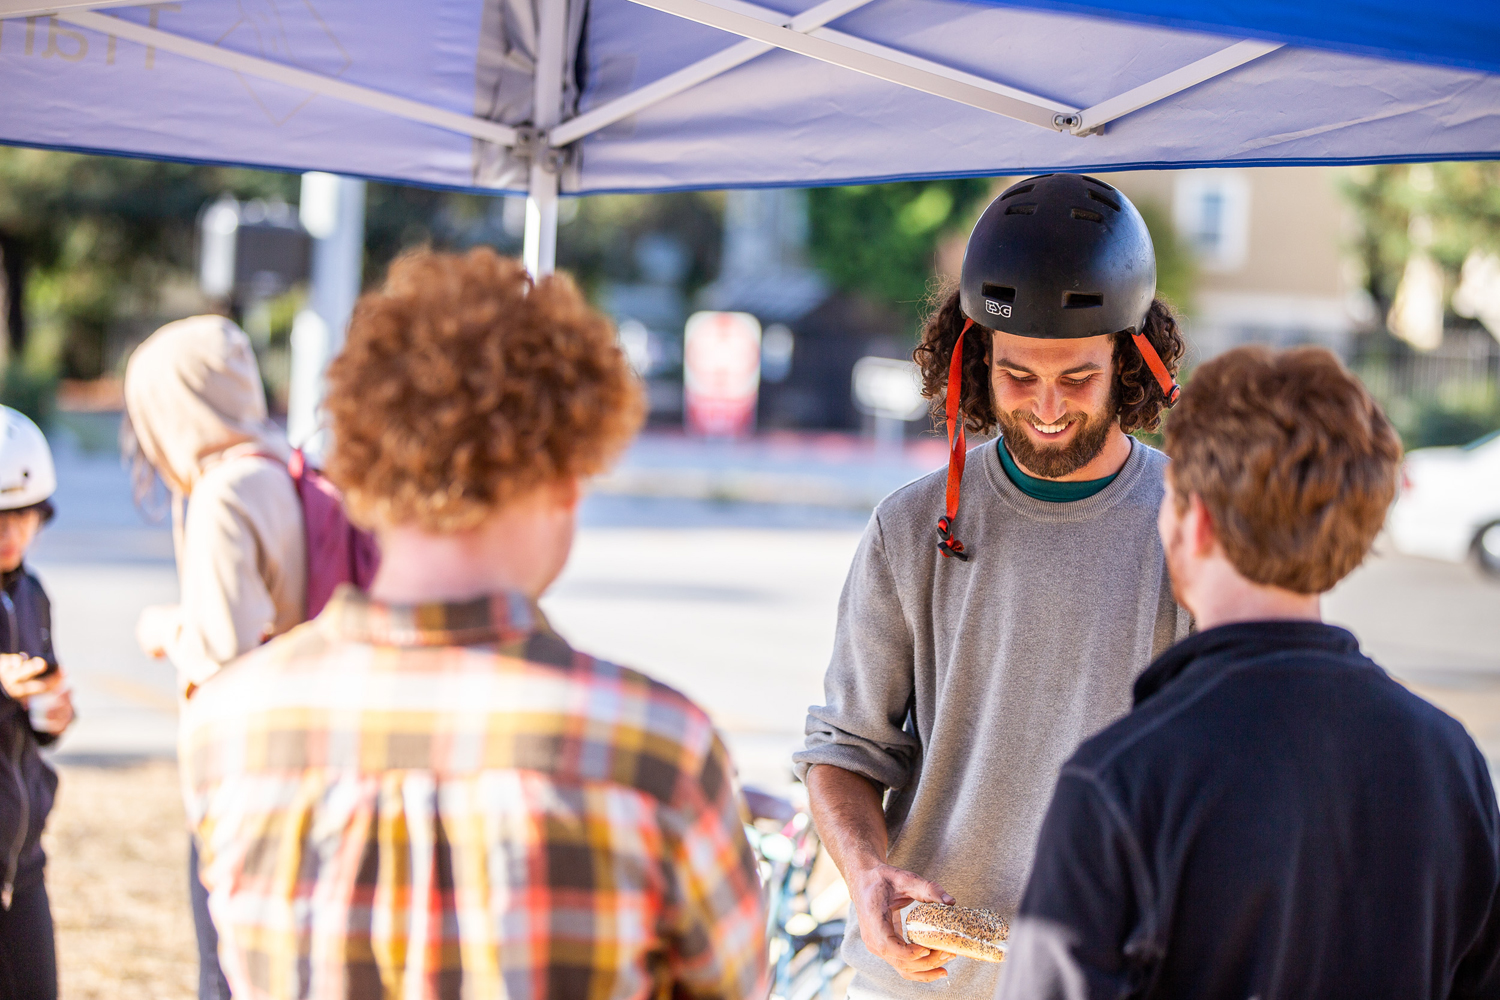 No shortage of smiles and bagels at last fall's Bike to Work Day at UCSC's main entrance. Photo courtesy Ecology Action.